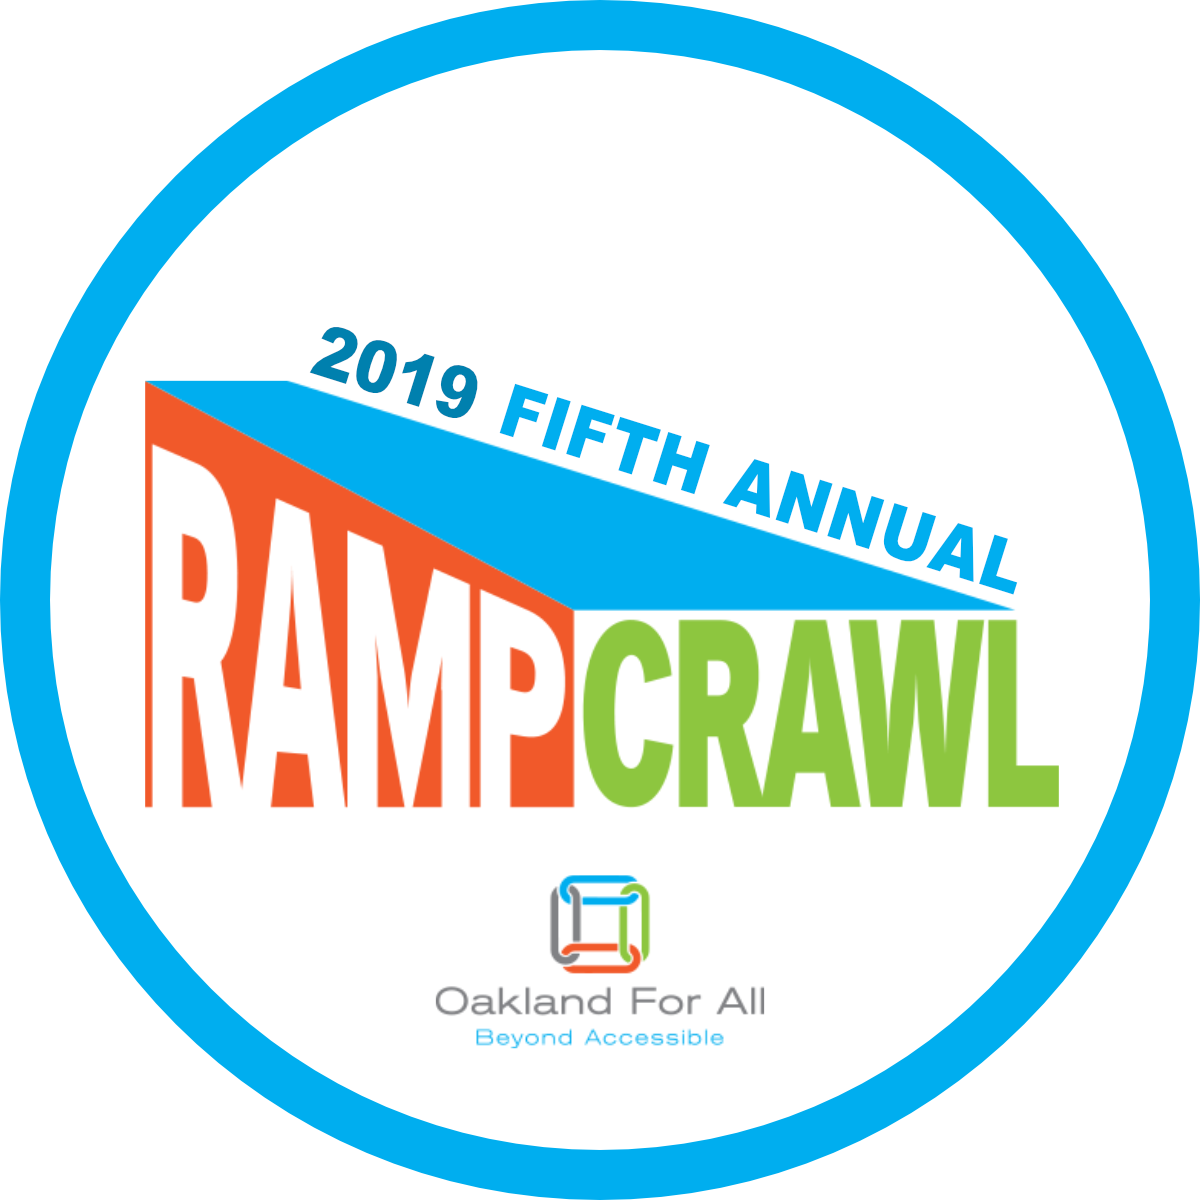 Oakland For All Fifth Annual Ramp Crawl - August 1, 2019